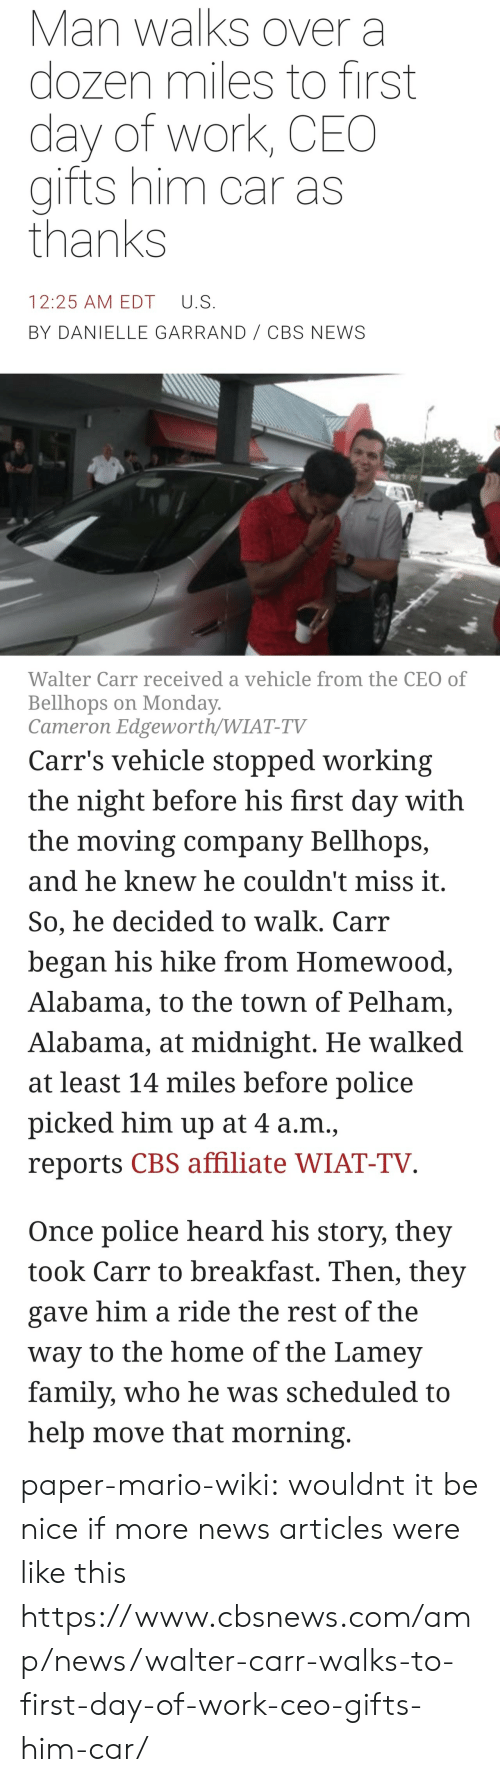 Family, News, and Police: Man walks over a  dozen miles to first  day of work, CEO  gifts him car as  thanks  12:25 AM EDT U.S  BY DANIELLE GARRAND CBS NEWS  Walter Carr received a vehicle from the CEO of  Bellhops on Monday  Cameron Edgeworth/WIAT-TV   Carr's vehicle stopped working  the night before his first day with  the moving company Bellhops,  and he knew he couldn't miss it  So, he decided to walk. Carr  began his hike from Homewood  Alabama, to the town of Pelham,  Alabama, at midnight. He walked  at least 14 miles before police  picked him up at 4 a.m.,  reports CBS affiliate WIAT-TV  Once police heard his story, they  took Carr to breakfast. Then, they  gave him a ride the rest of the  way to the home of the Lamev  family, who he was scheduled to  help move that morning paper-mario-wiki:  wouldnt it be nice if more news articles were like this  https://www.cbsnews.com/amp/news/walter-carr-walks-to-first-day-of-work-ceo-gifts-him-car/